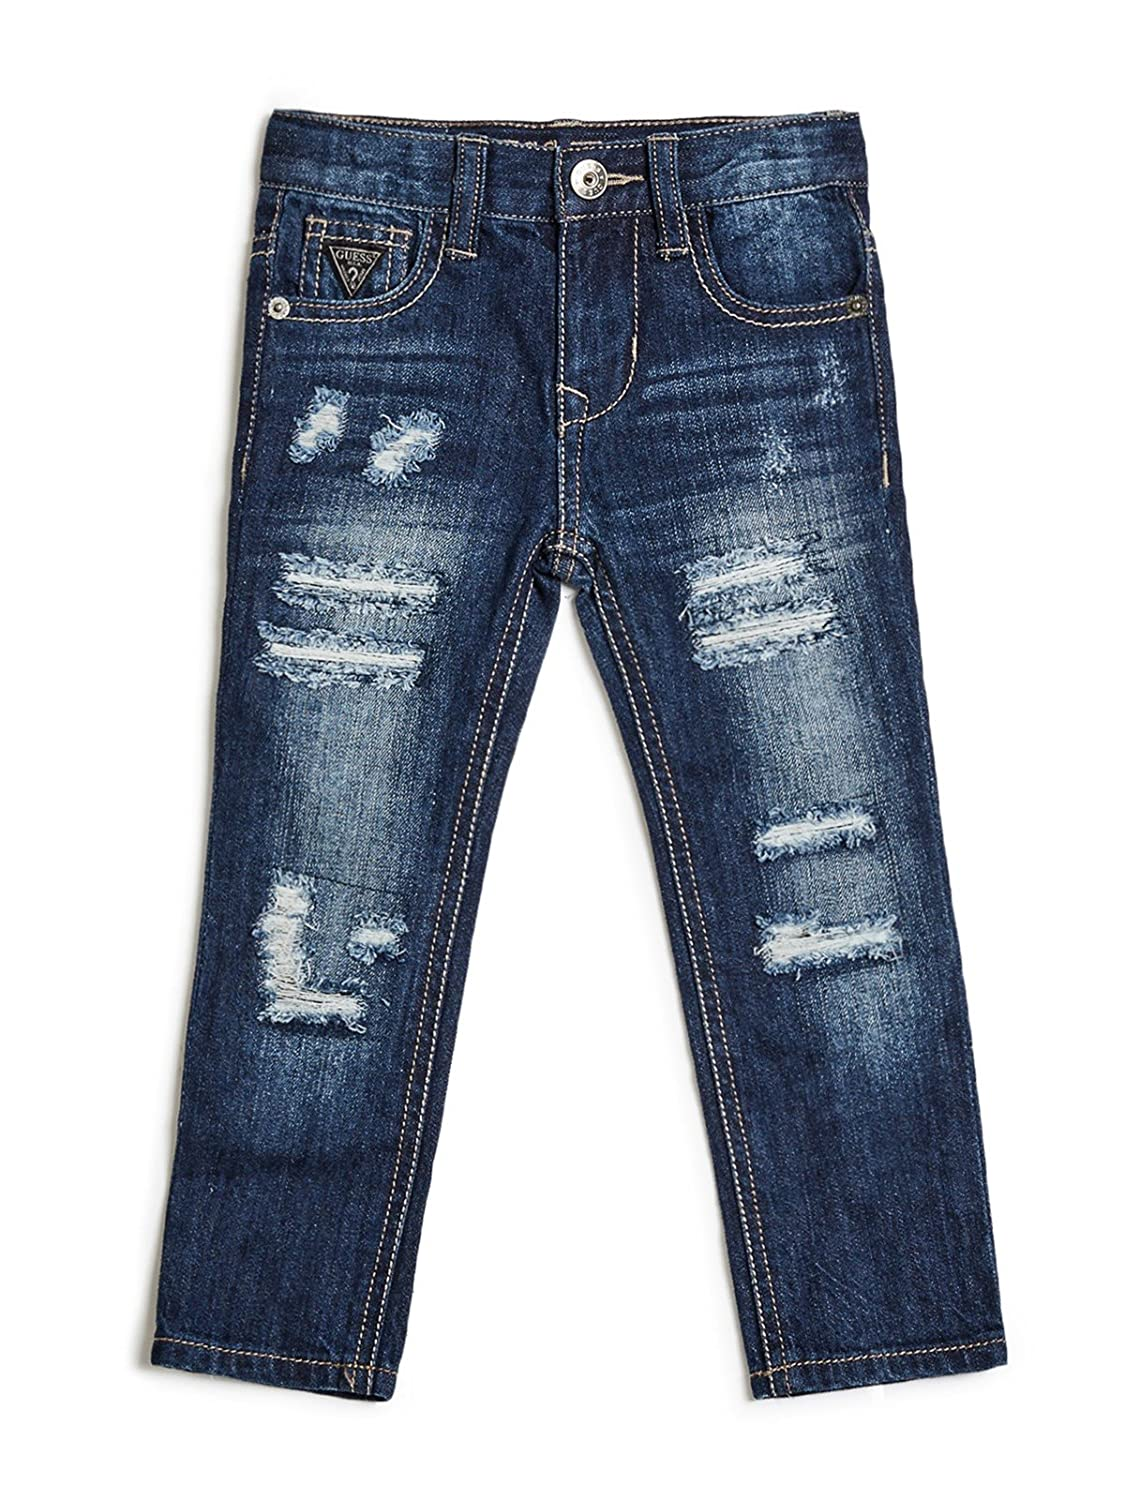 Guess Factory Jace Destroyed Jeans (2-6) GuessFactory